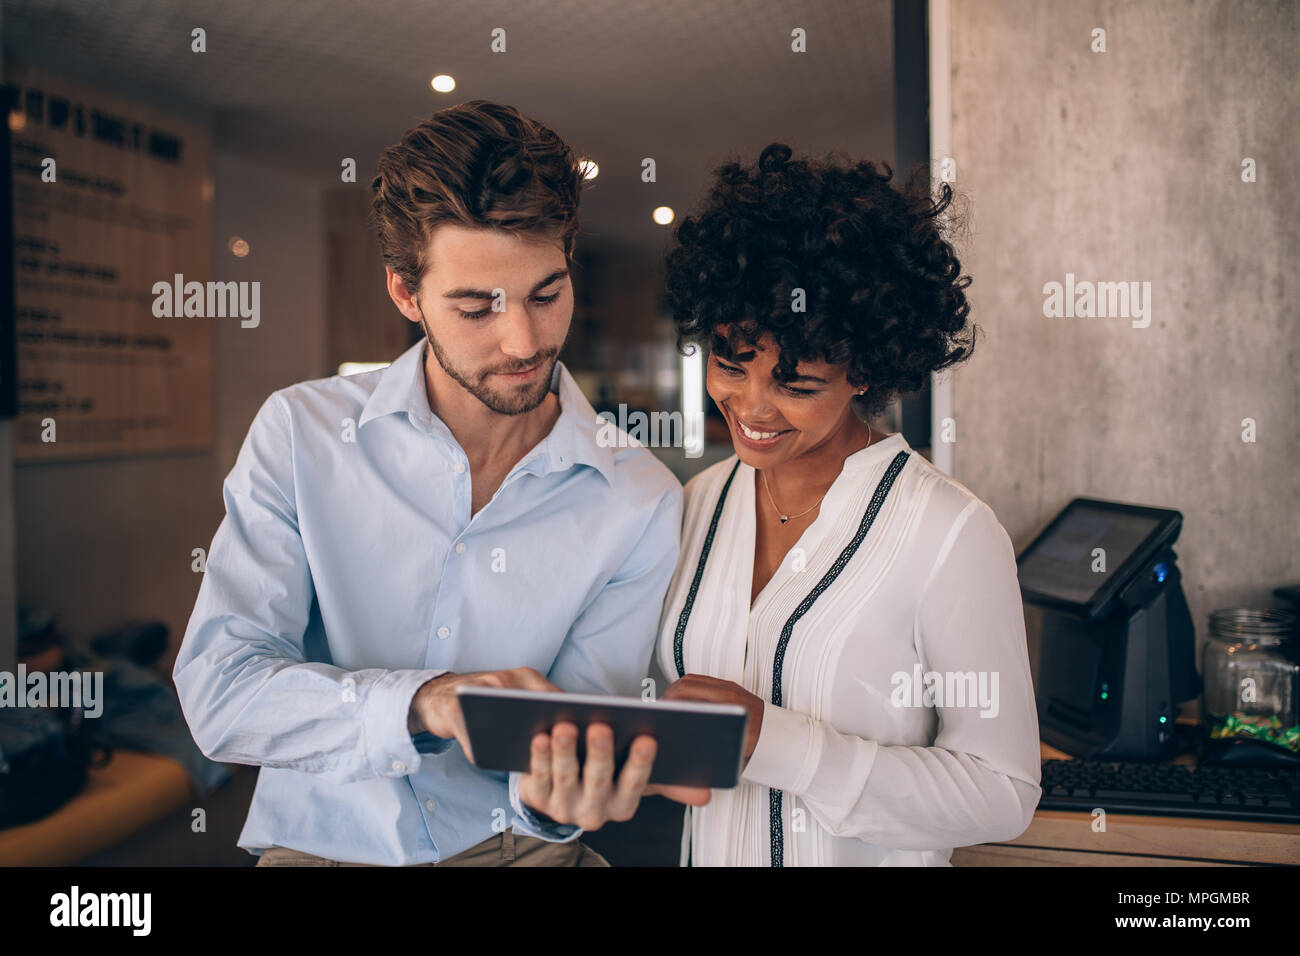 Deux partenaires d'affaires restaurant Standing together and looking at digital tablet. Man and Woman using digital tablet in a cafe. Banque D'Images